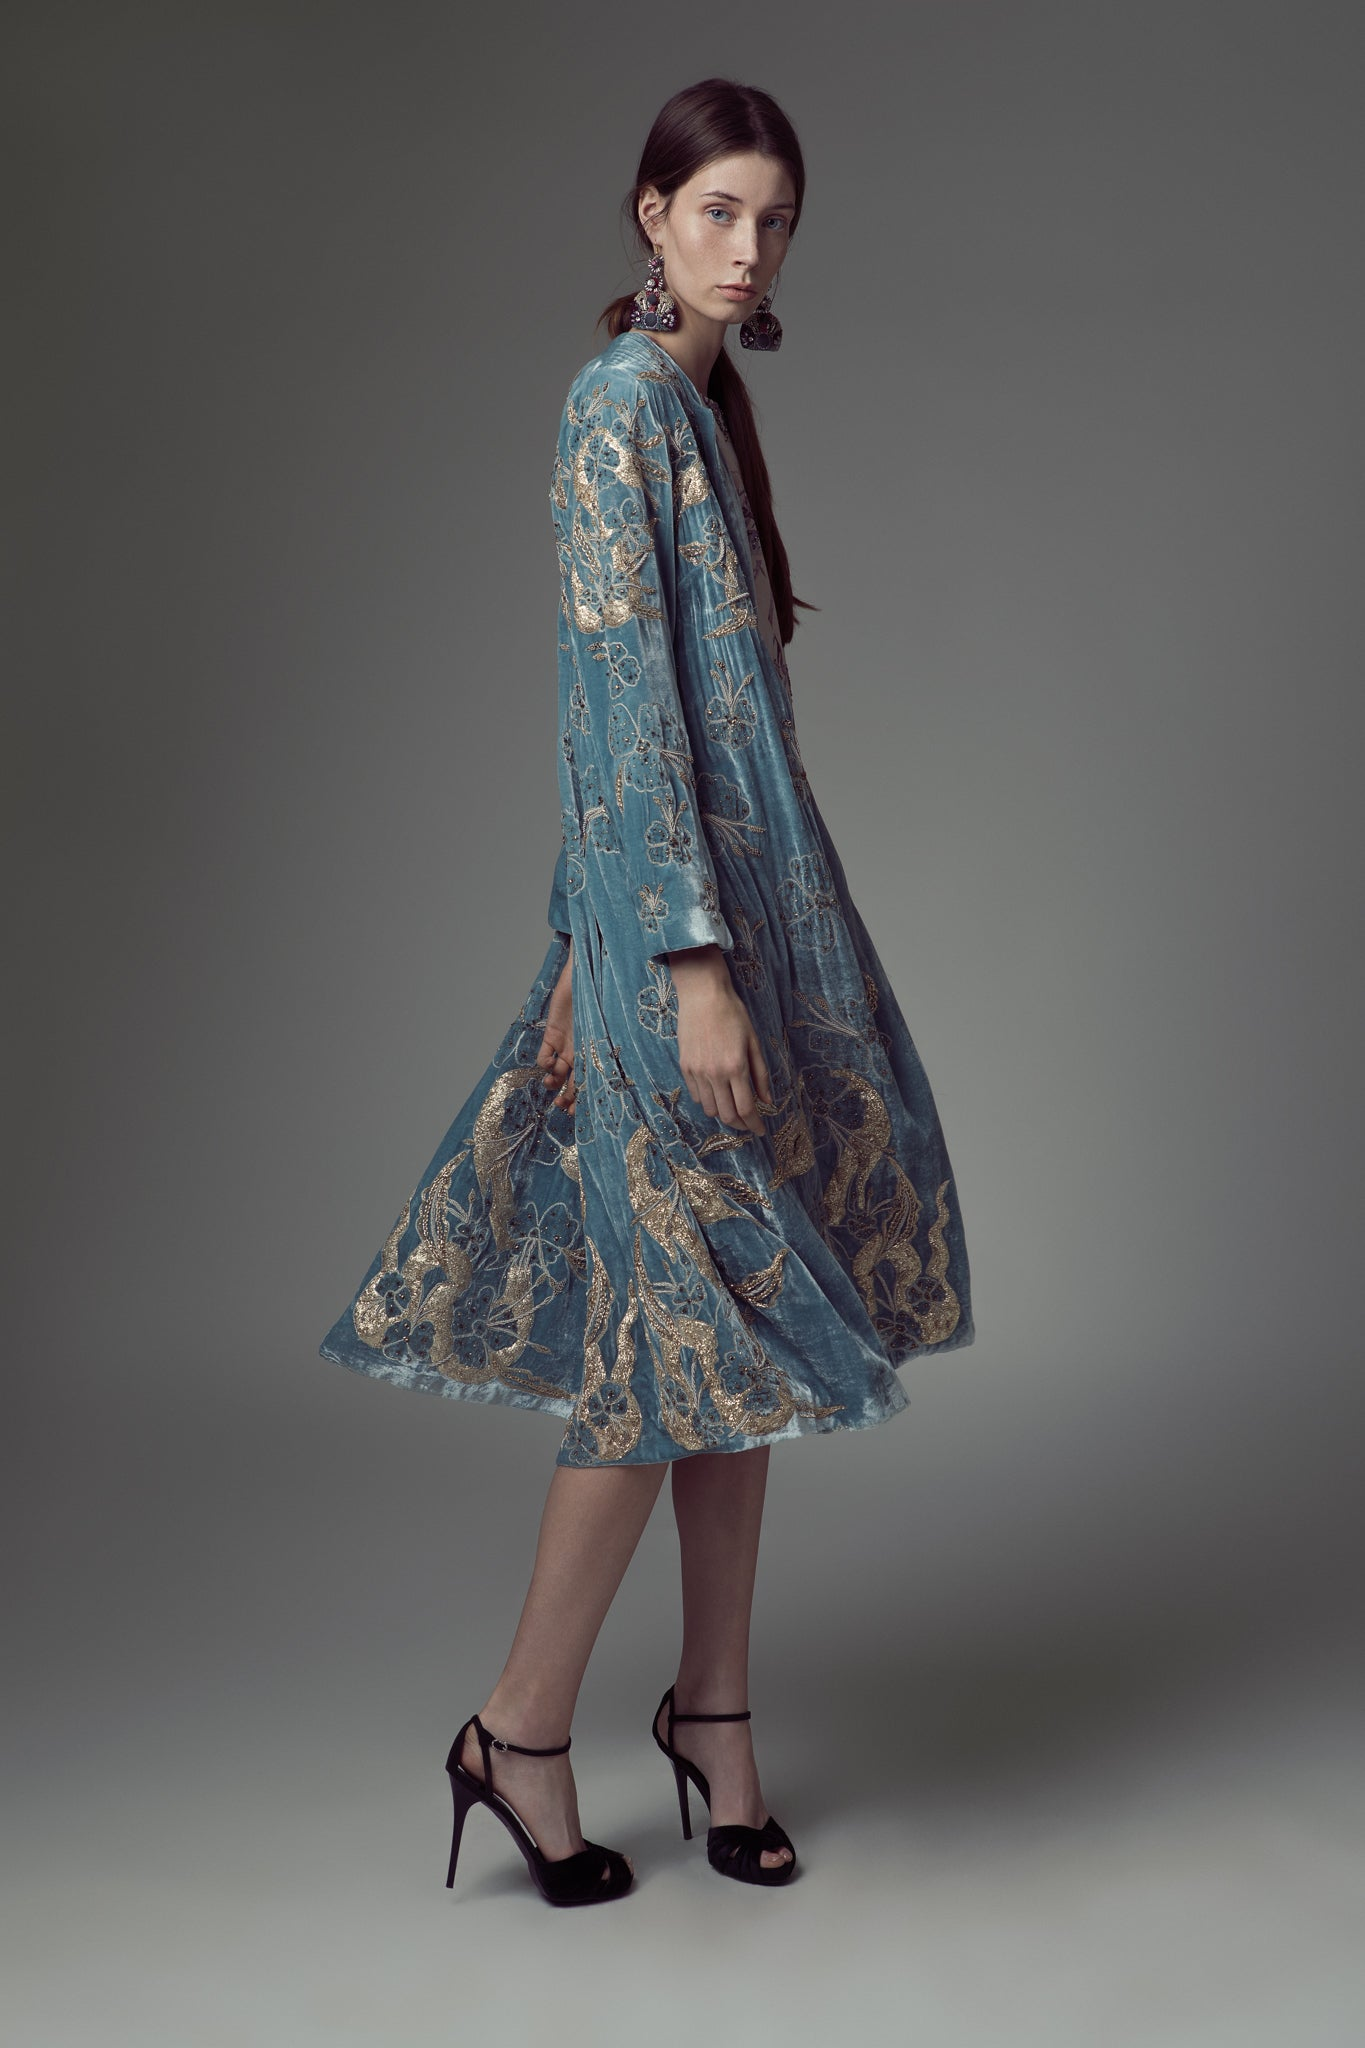 Velvet gold embroidered coat